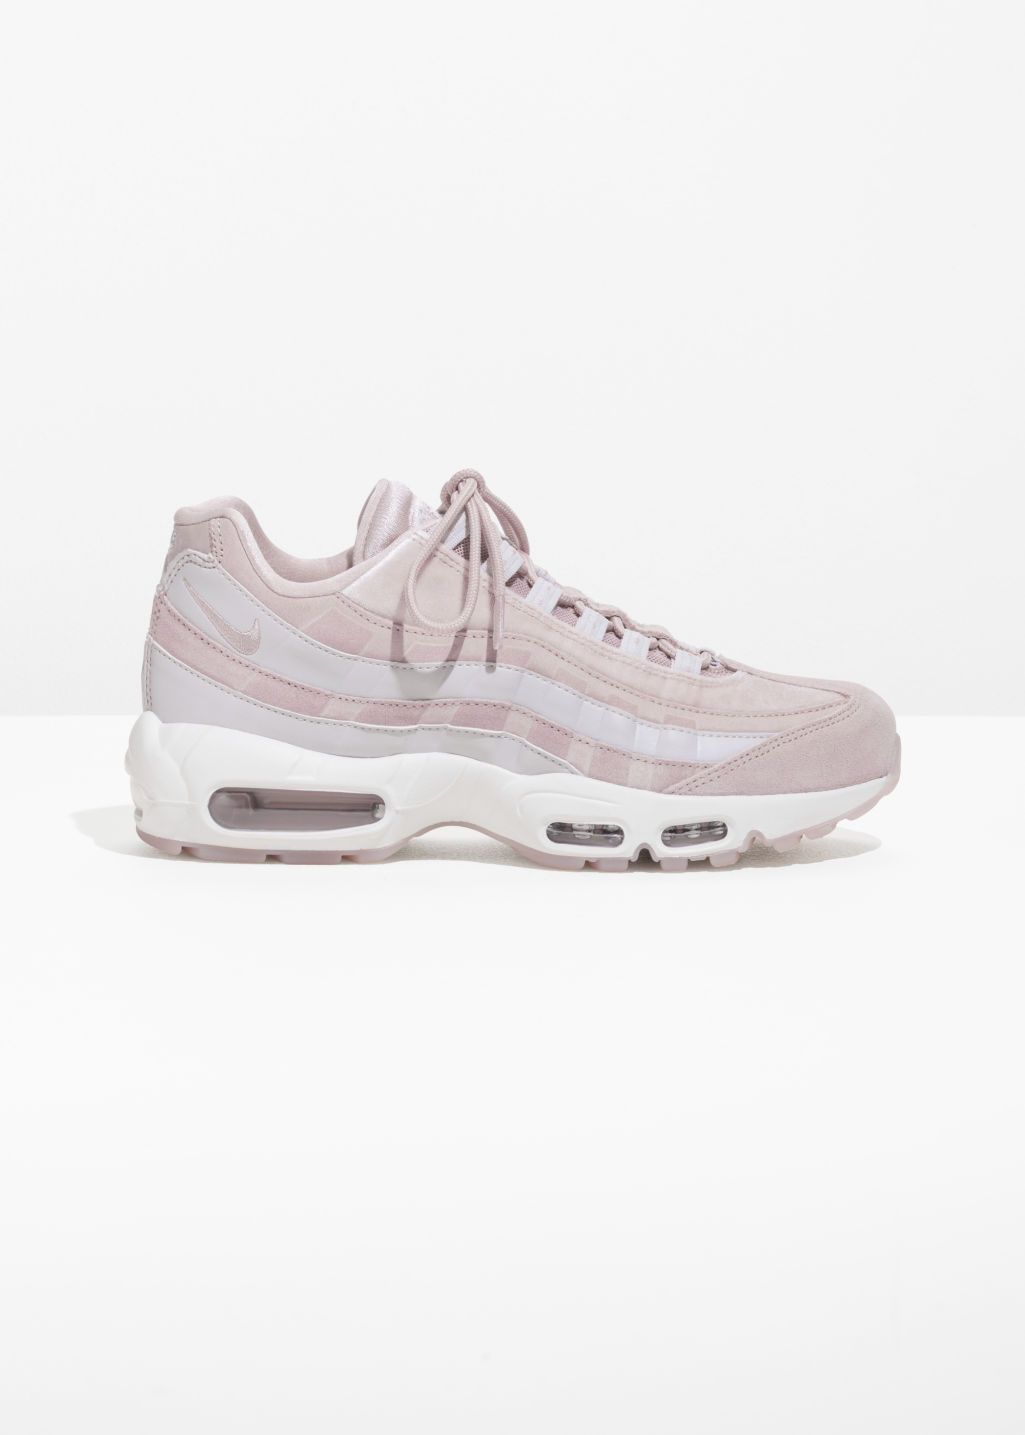 Nike Air Max 95 Lx Light Pink Nike & Other Stories